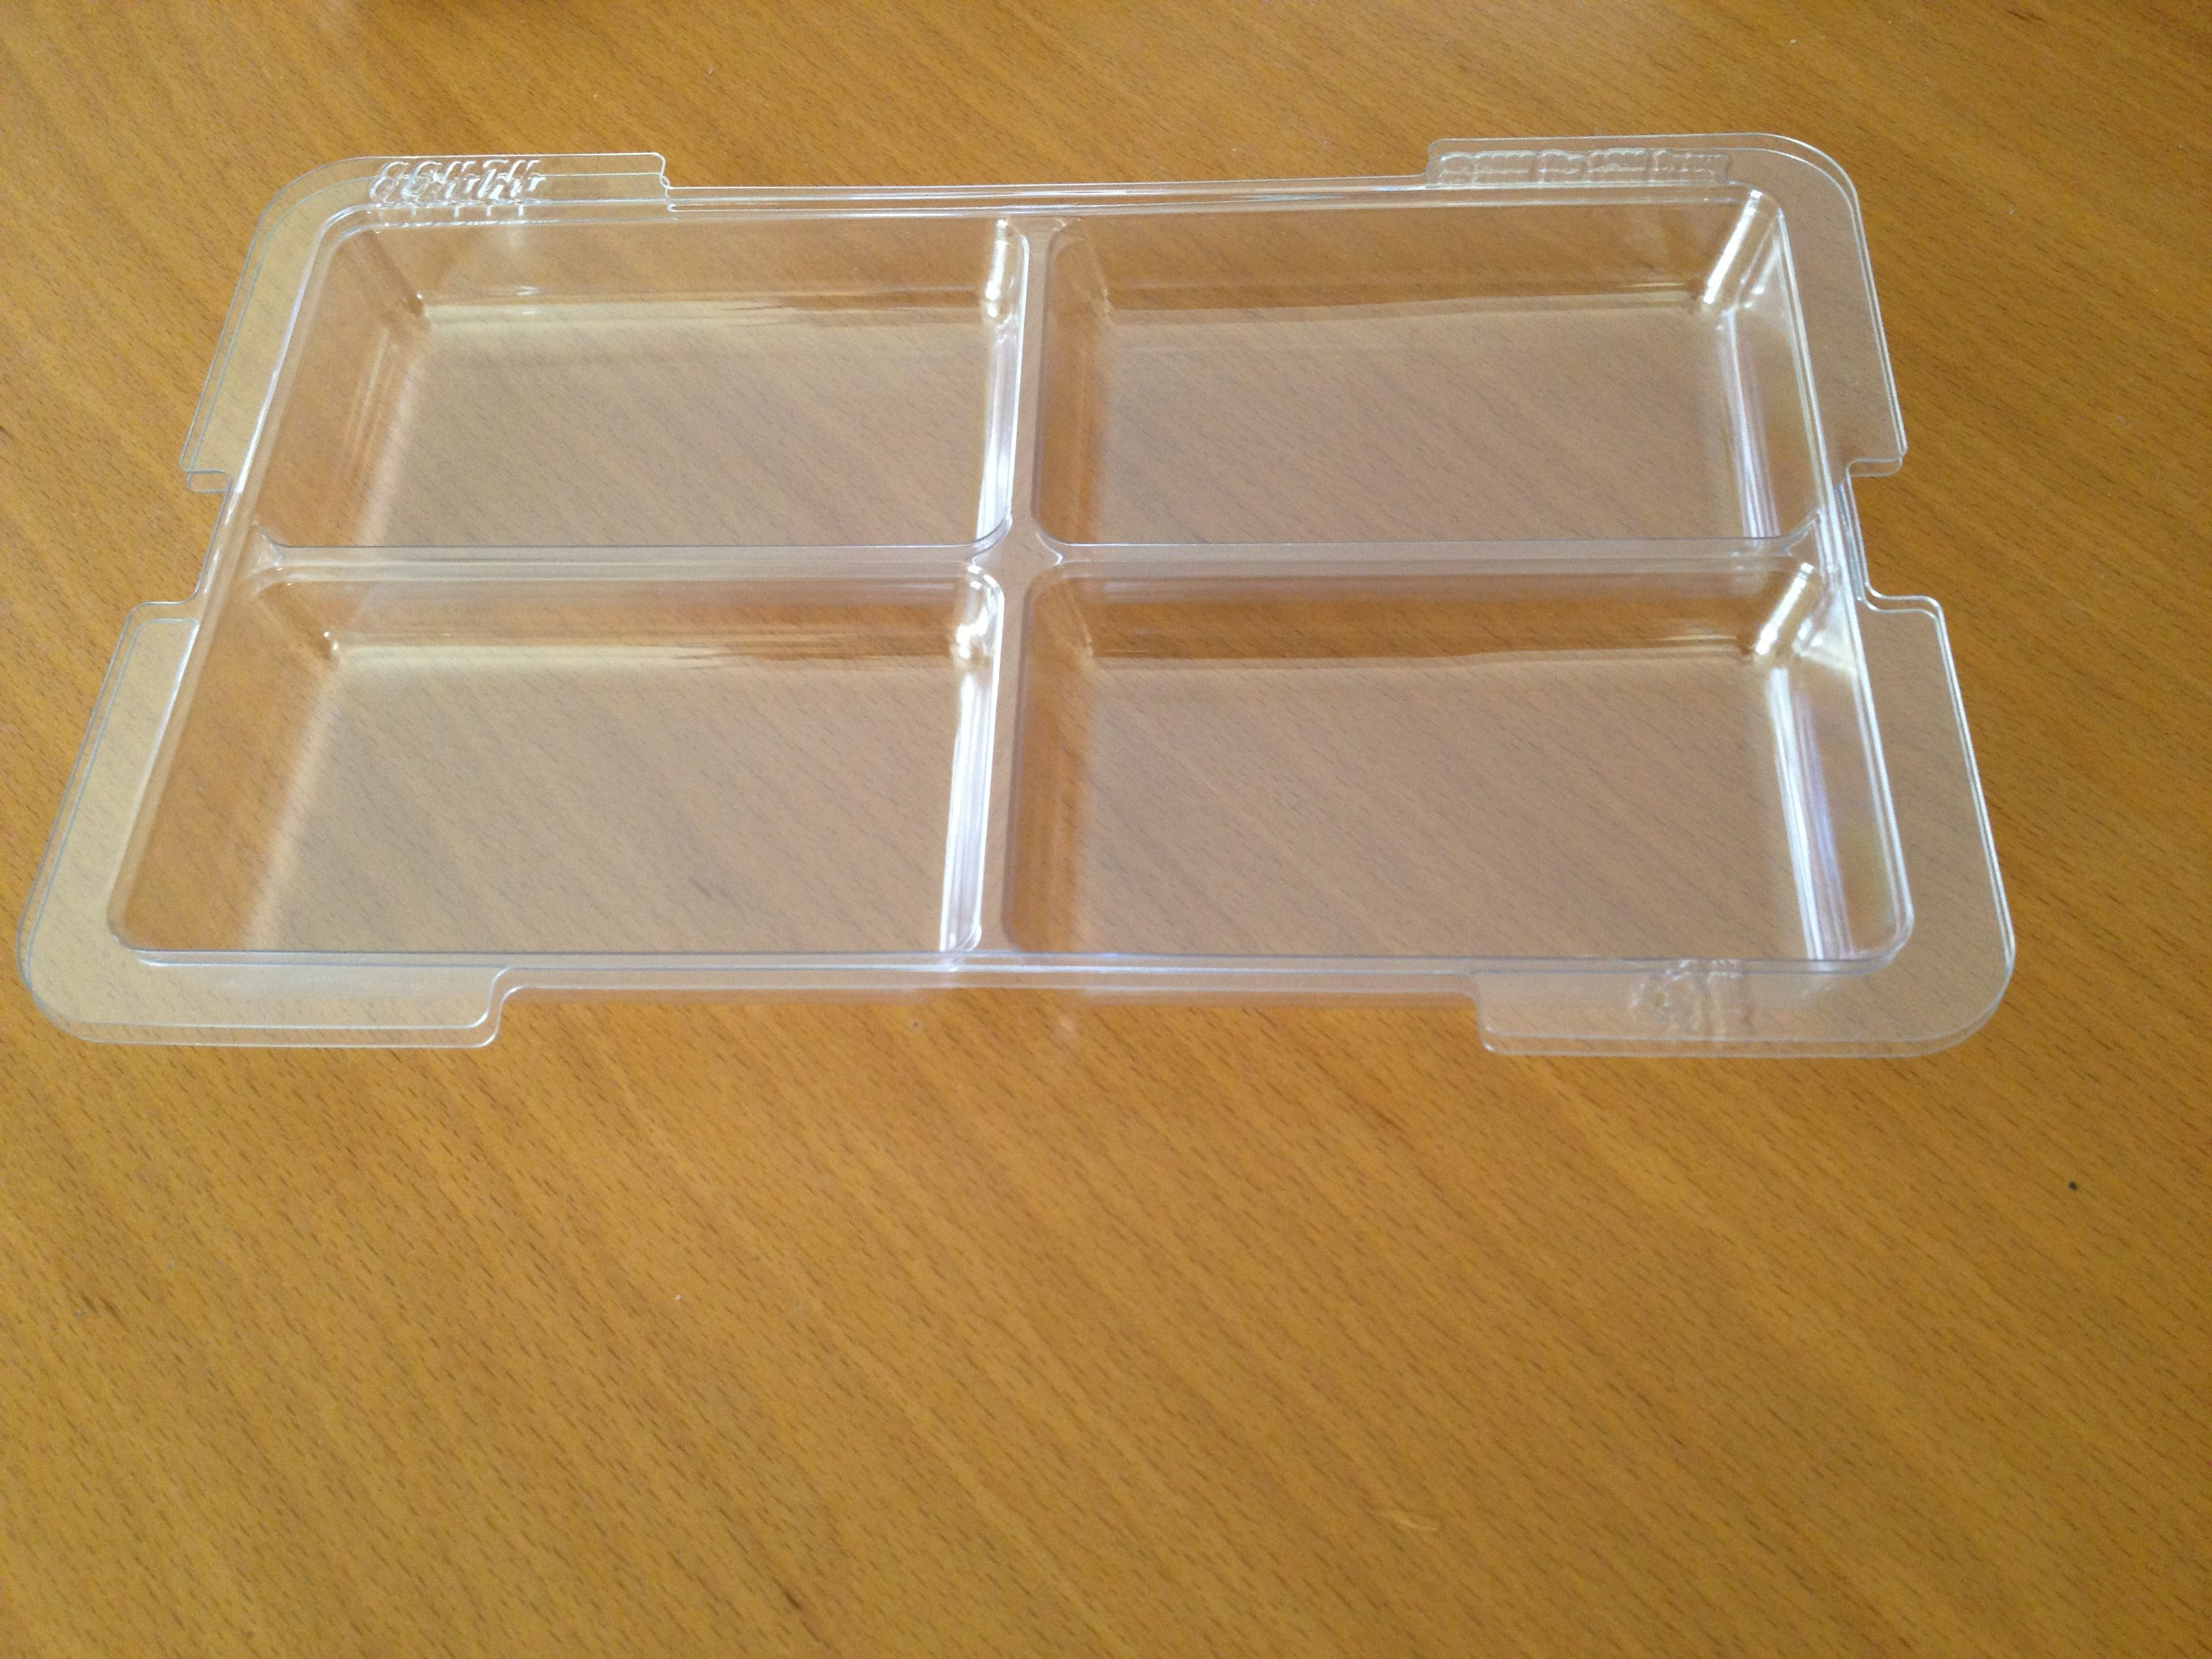 The kit comes with two of these trays. Photo: Jenny Williams